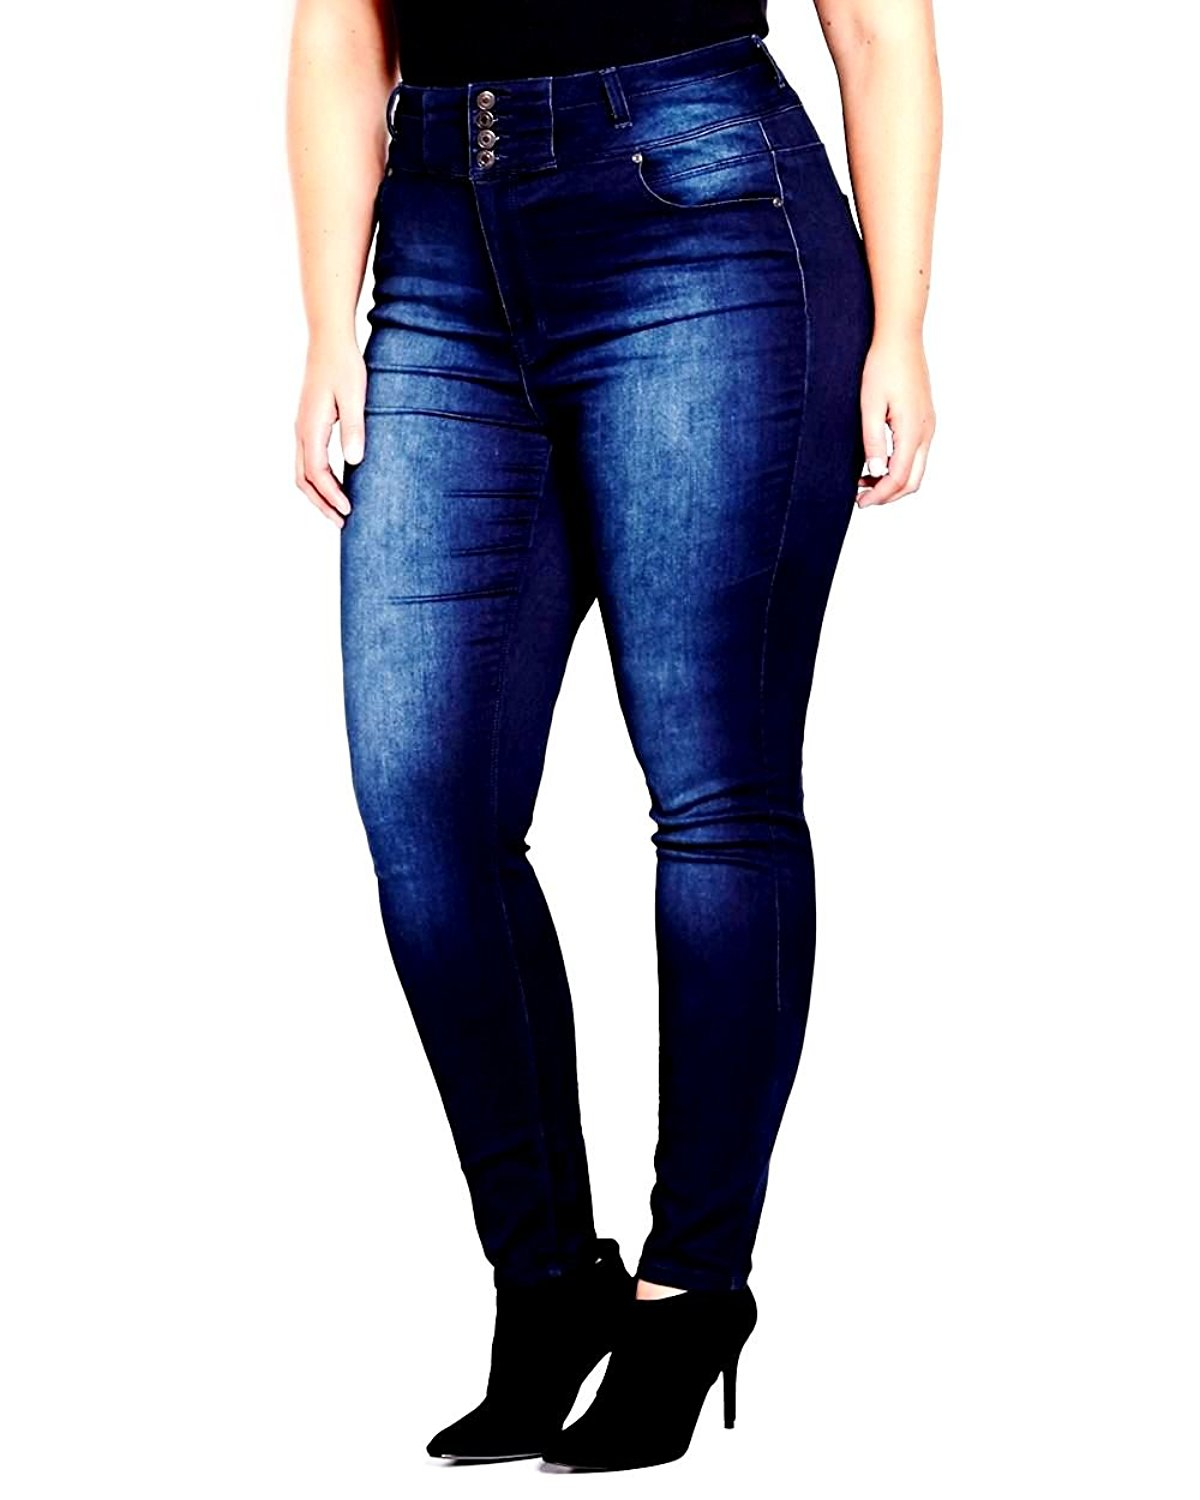 40d779919 Get Quotations · Jack David Womens Plus Size High Waisted Black/Blue Stretch  Skinny Denim Jeans Pants